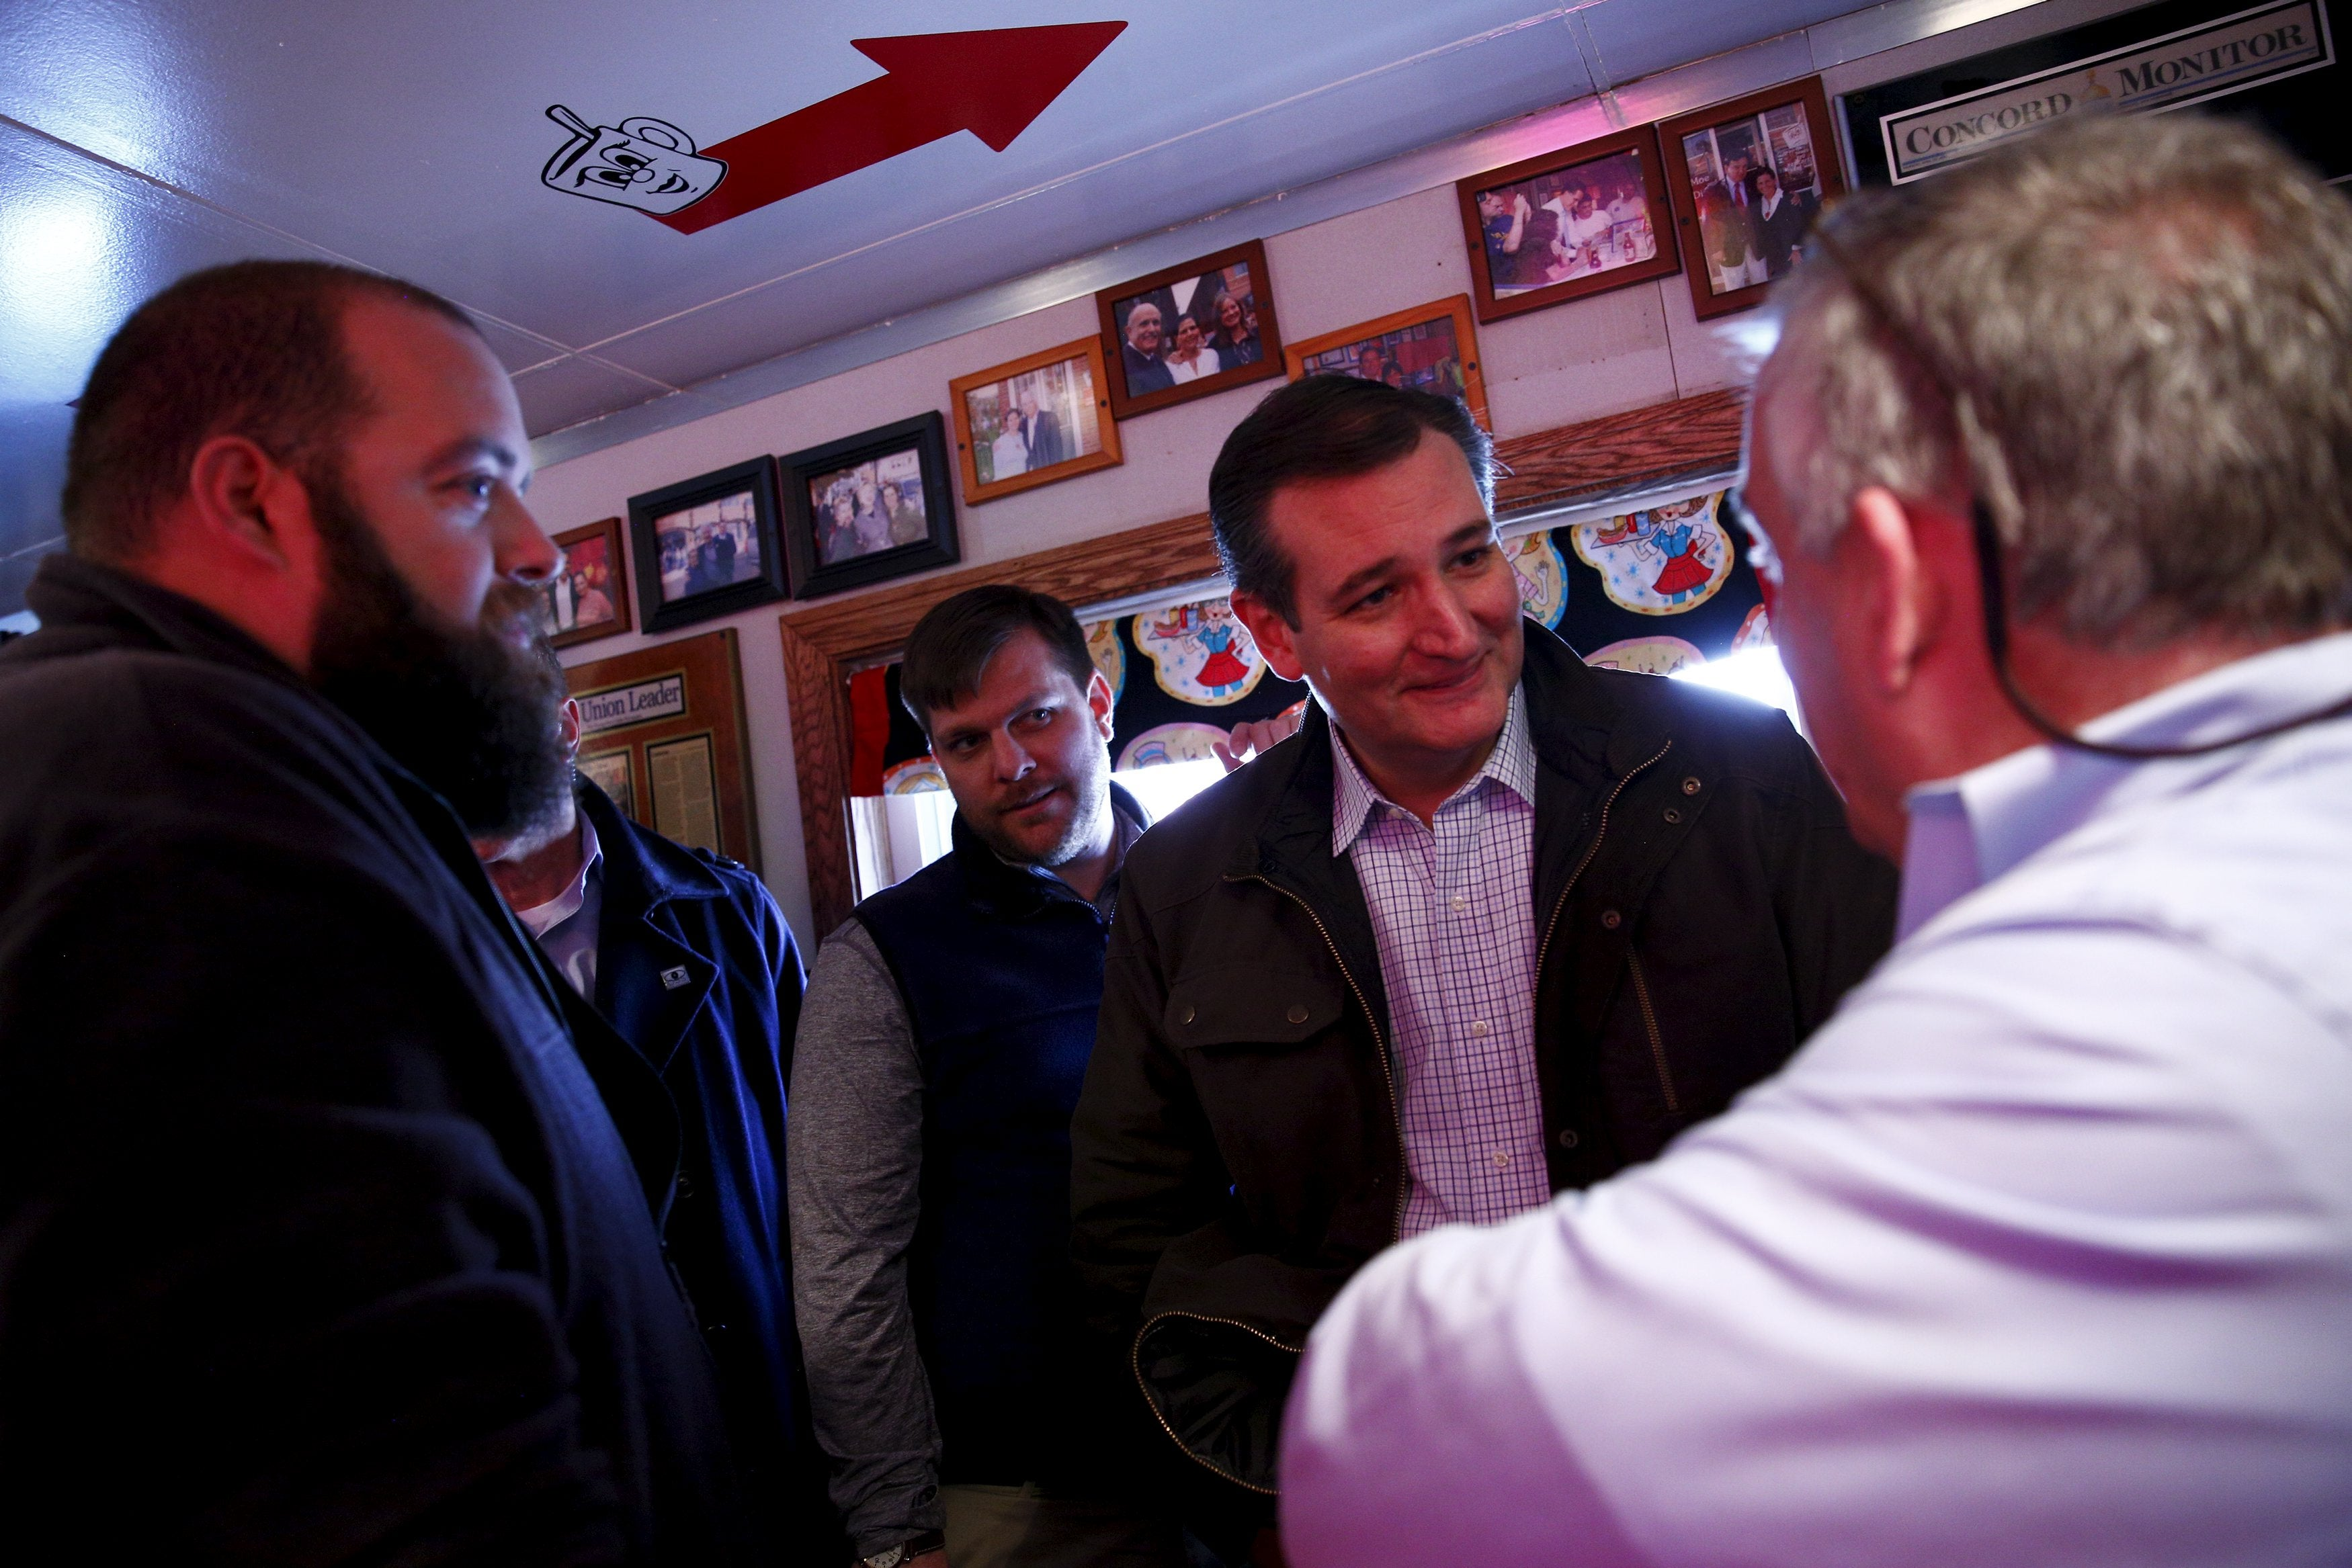 Republican presidential hopeful Ted Cruz greets a customer at the Red Arrow Diner in Manchester, New Hampshire.